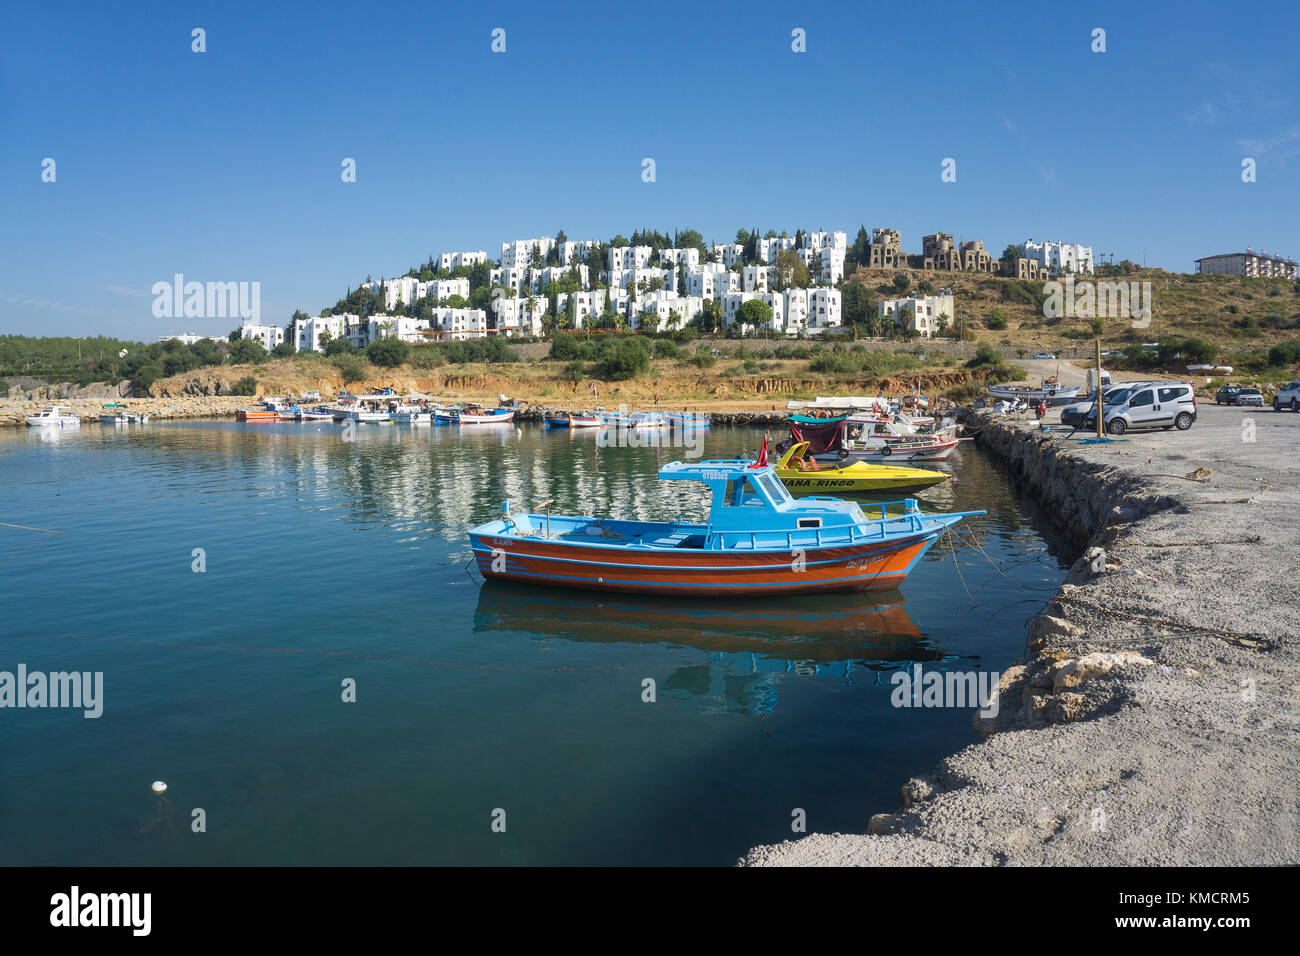 Small harbour with fishing boats at a vacation home village, Avsallar, turkish riviera, Turkey - Stock Image